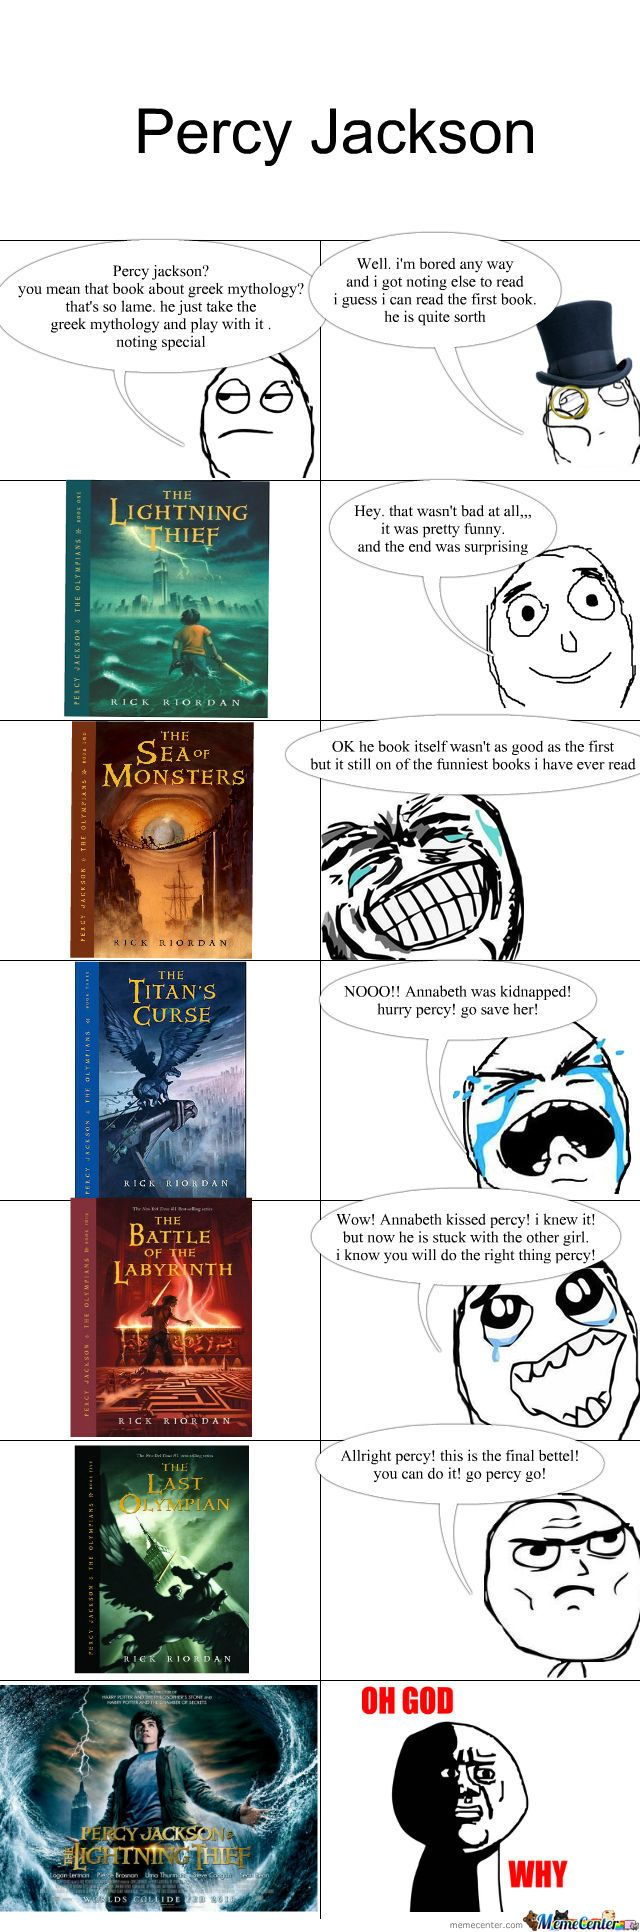 THIS IS SO TRUE!! That's what I thought like when my friend would talk to me about Percy Jackson. Then one day I was bored and read it. IT'S ALL I CAN THINK ABOUT NOW.